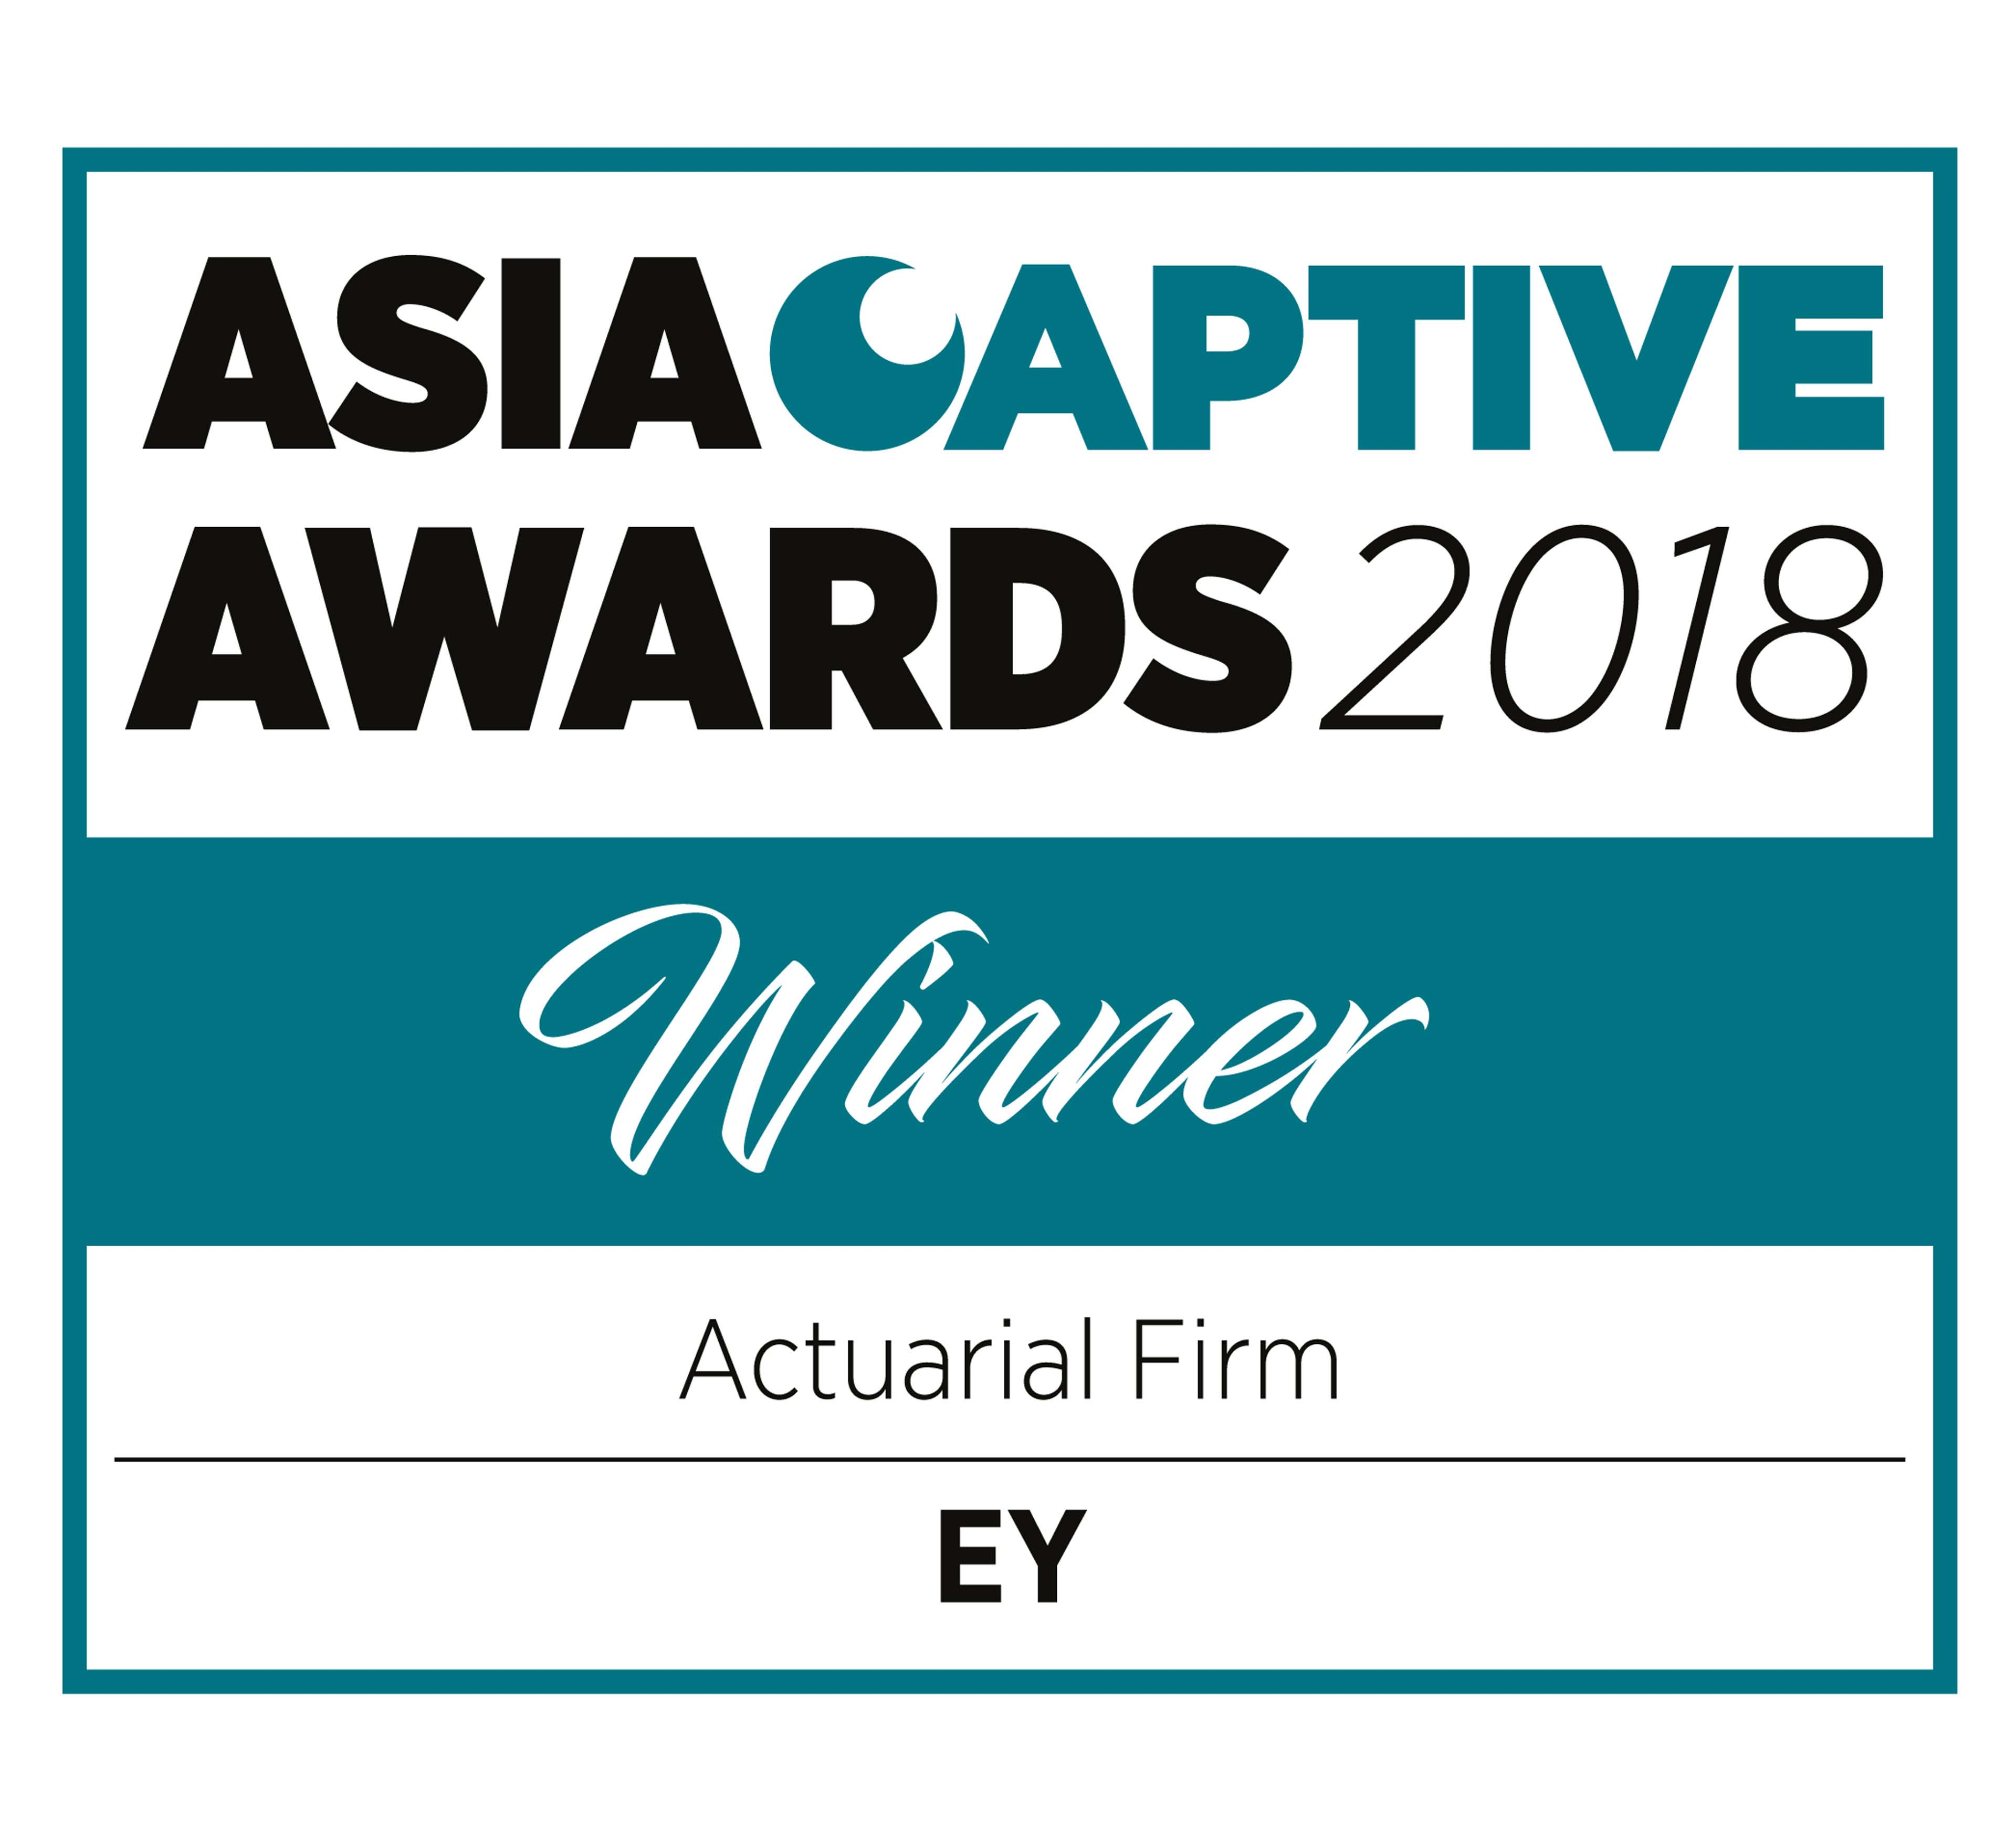 Asia Captive Awards 2018 Winner Actuarial Firm EY